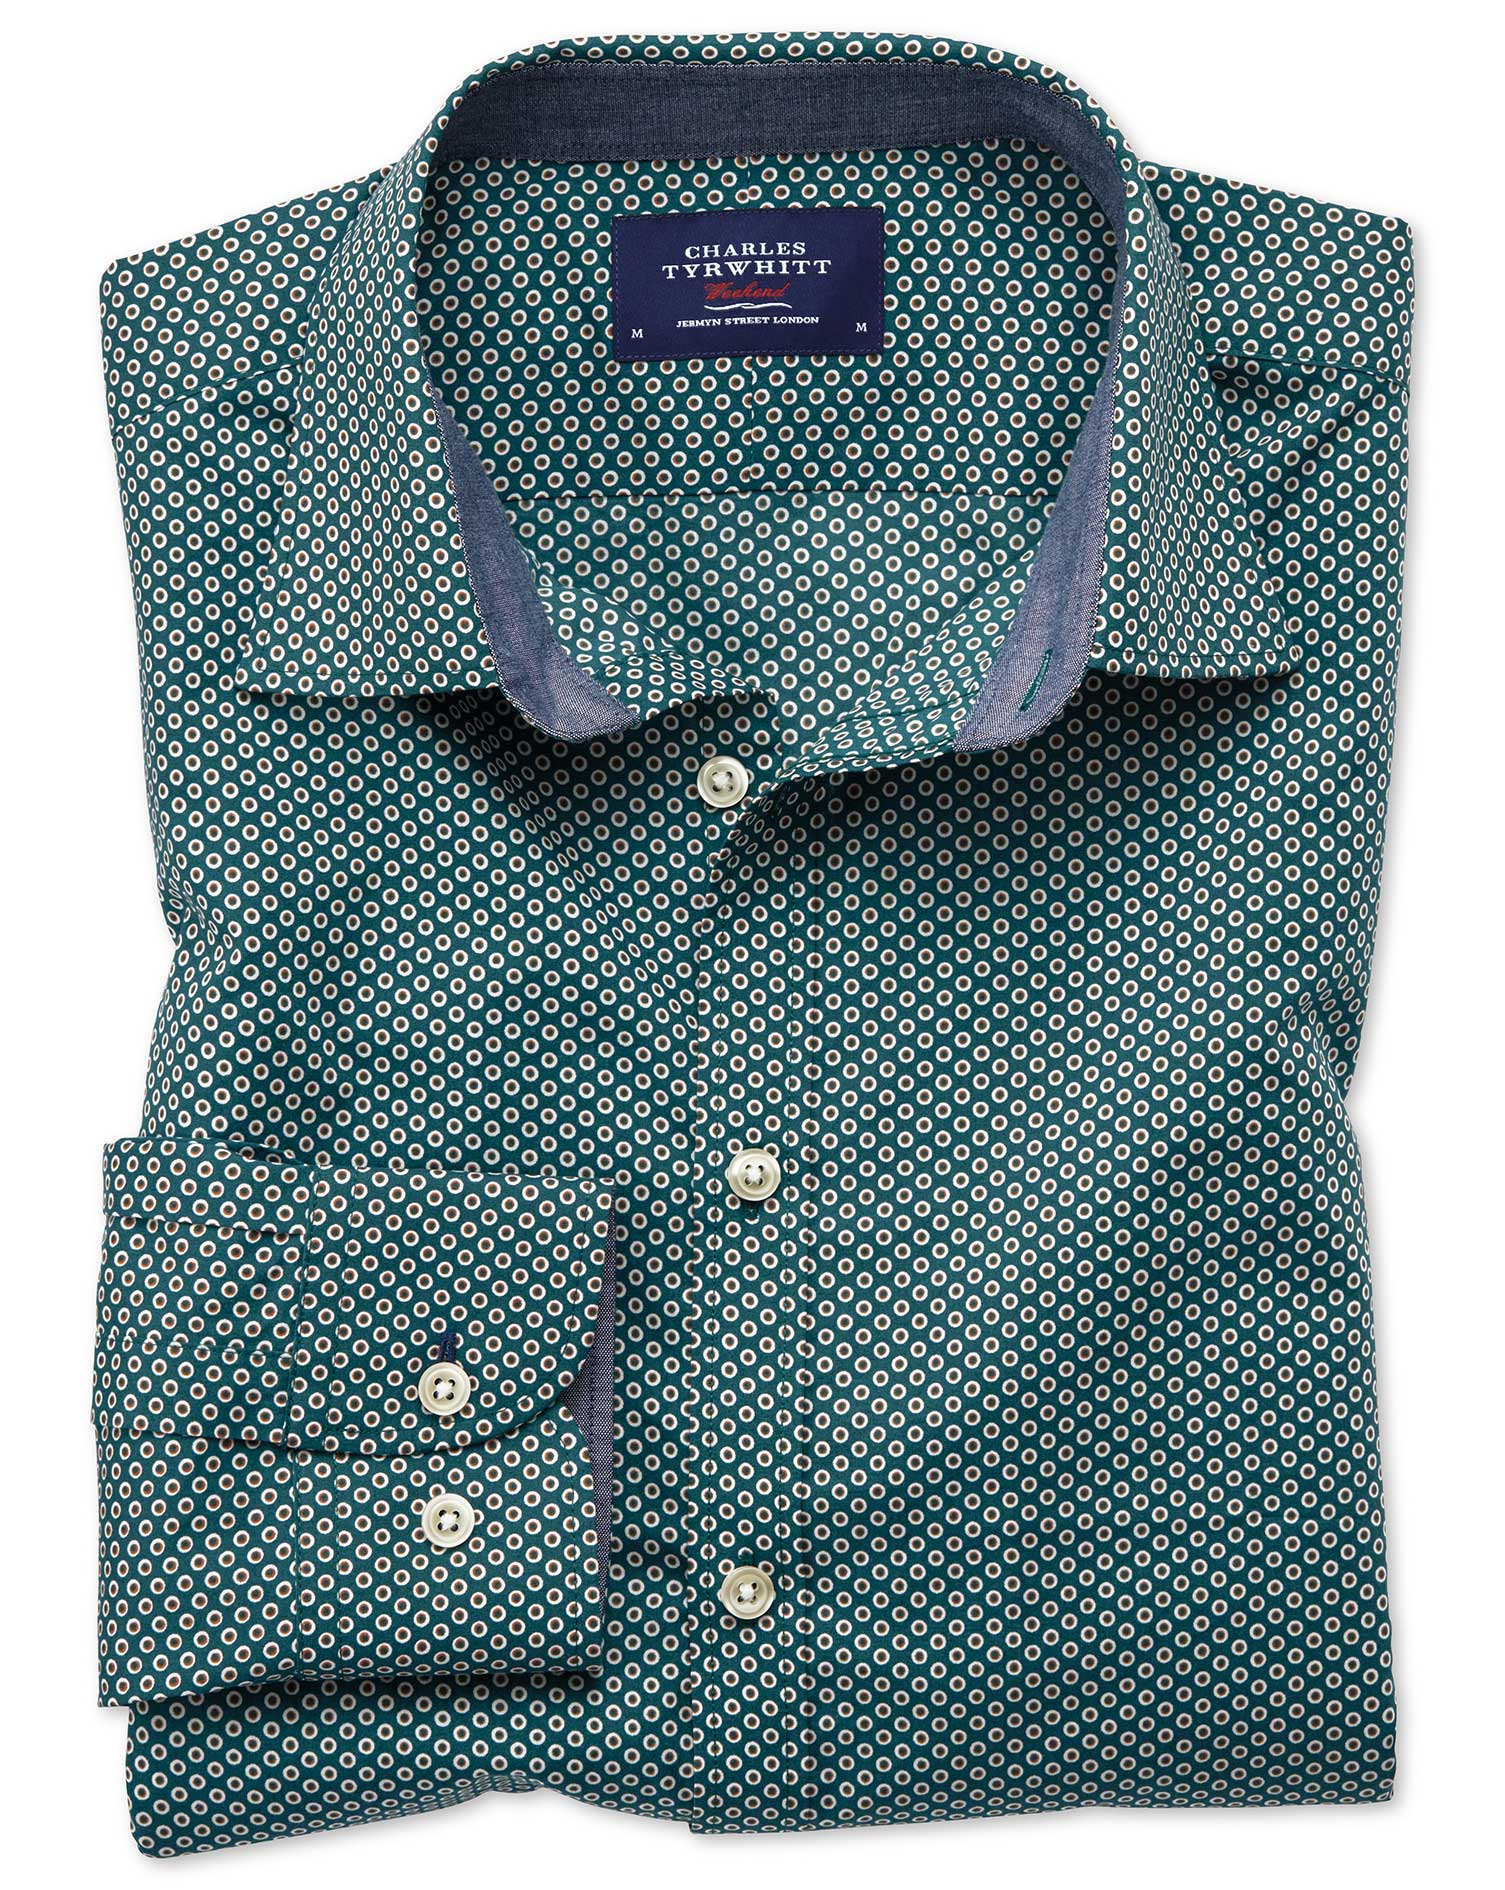 Slim Fit Dark Green Spot Print Cotton Shirt Single Cuff Size Medium by Charles Tyrwhitt